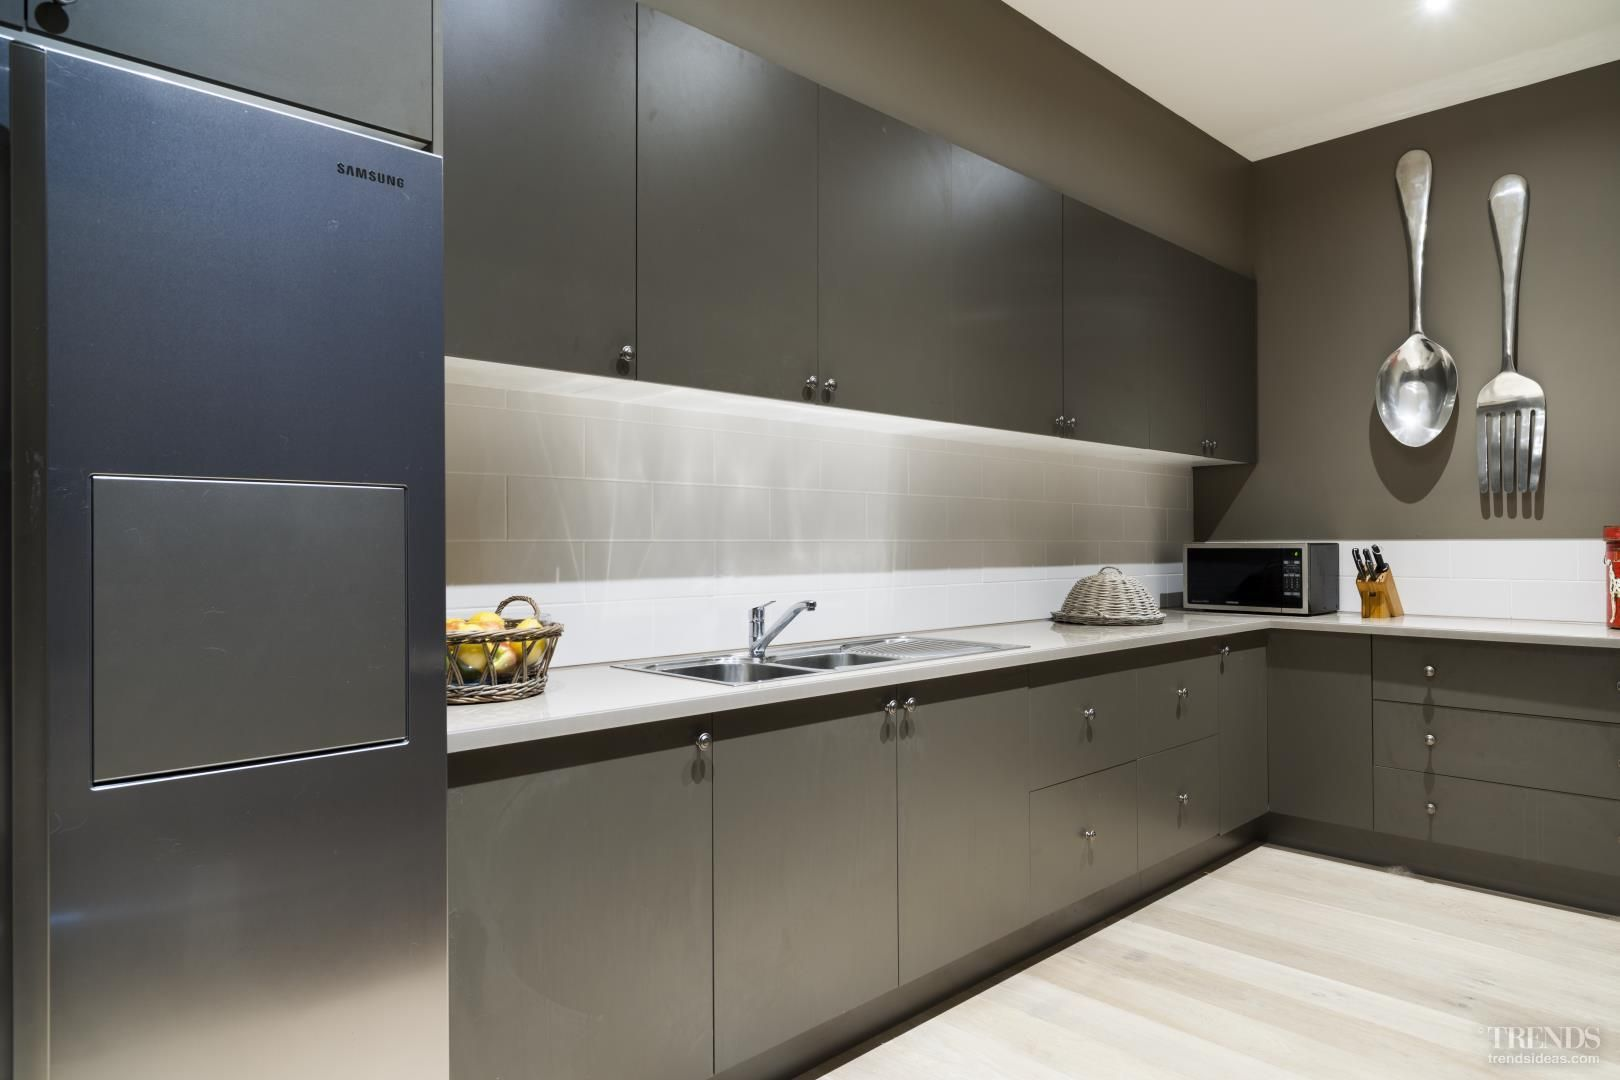 Modern scullery / butlers pantry   Home kitchens, Laundry design ...